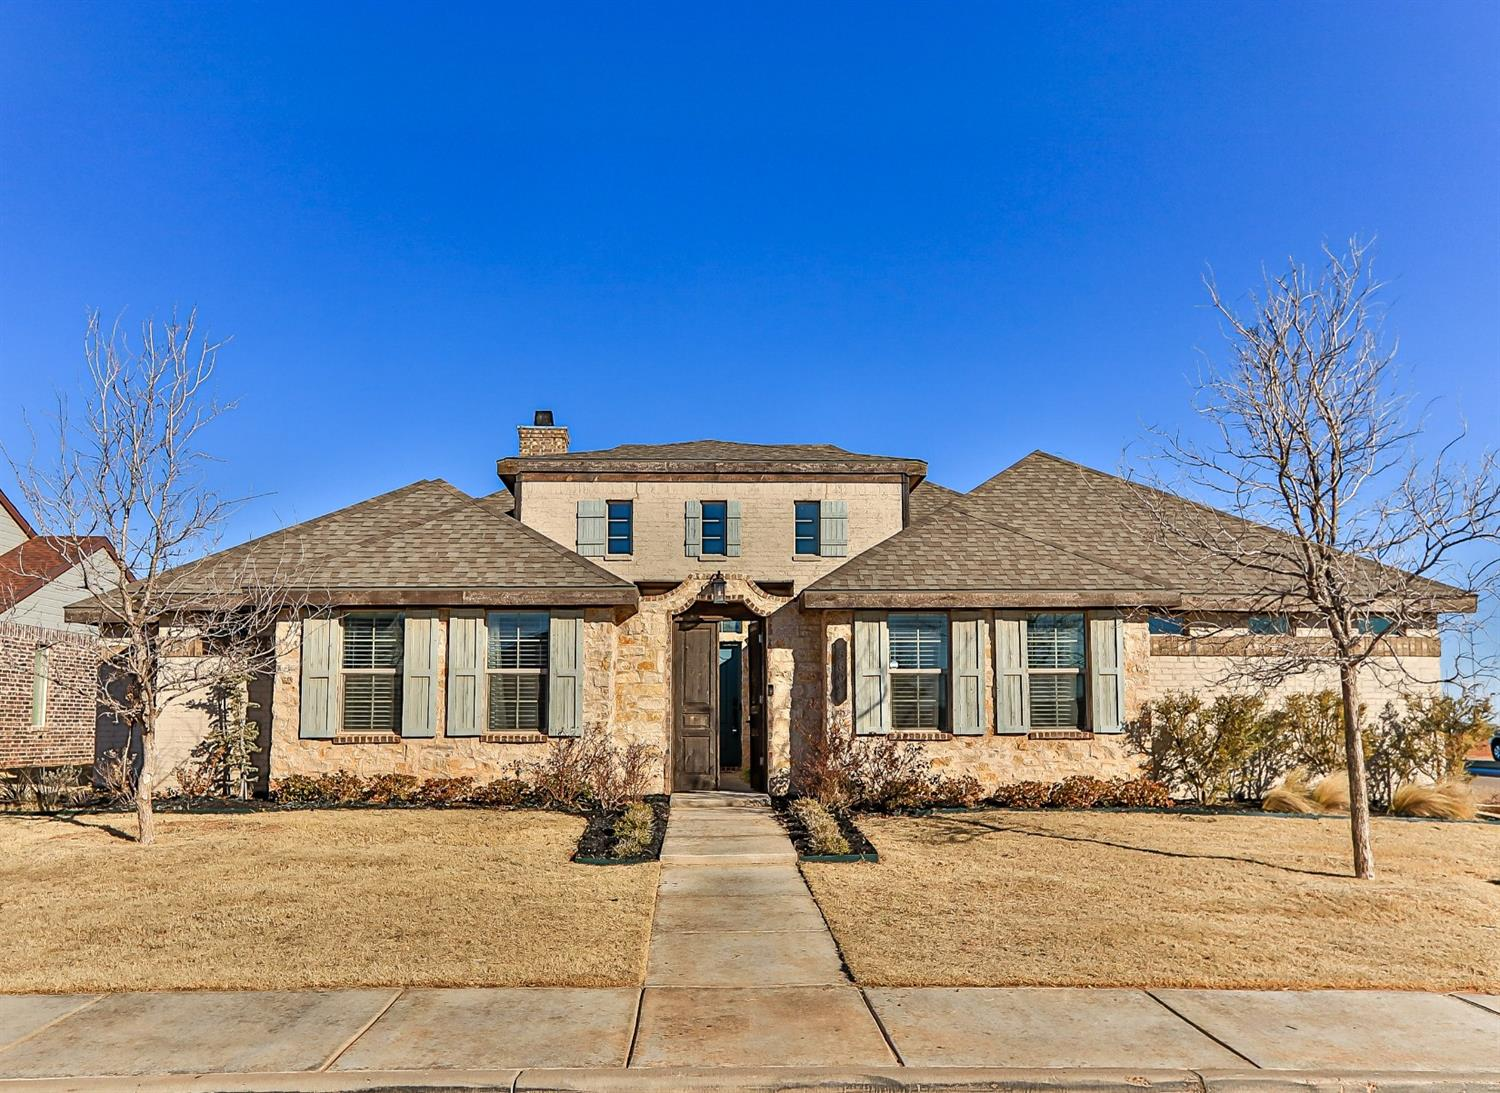 Creativity & Craftsmanship in Kelsey Park!Time to Gather The Family in This Fine Home Built by Jeff Seal,2017! Nestled on a Beautiful Corner Lot,the Curb Appeal is 2nd to None-Small Private Courtyard Leads You to The Turquoise Front Door & You Know You Are HOME! LARGE Living Area W/Vaulted & Beamed Ceiling,Vinyl Plank Flooring & Stylish Fireplace...Flowing Right Into the Attractive Dining Area & Dreamy Kitchen! You Will Want to Stay In & Eat In,This Well-Equipped Kitchen Has You Covered...Double Gas Ranges,Stainless Refrigerator/Freezer,Granite Island W/Seating,Super Pantry...All Topped Off With Striking Ceiling & Delightful Lighting-Isolated Master Retreat W/Spa-Like Bath...Soaking Tub & Chic Shower-2nd Isolated Bedroom;3rd & 4th Bedrooms Neatly Share JacknJill Bath-Favorite Family Hangouts...Bricked Family Room & Outdoor Living Complete With Large Covered Patio & Firepit! Super Storage/Closet Space Throughout-OFFERING $5000 in BUYER CLOSING COSTS...Call This Irresistible HOME Today!